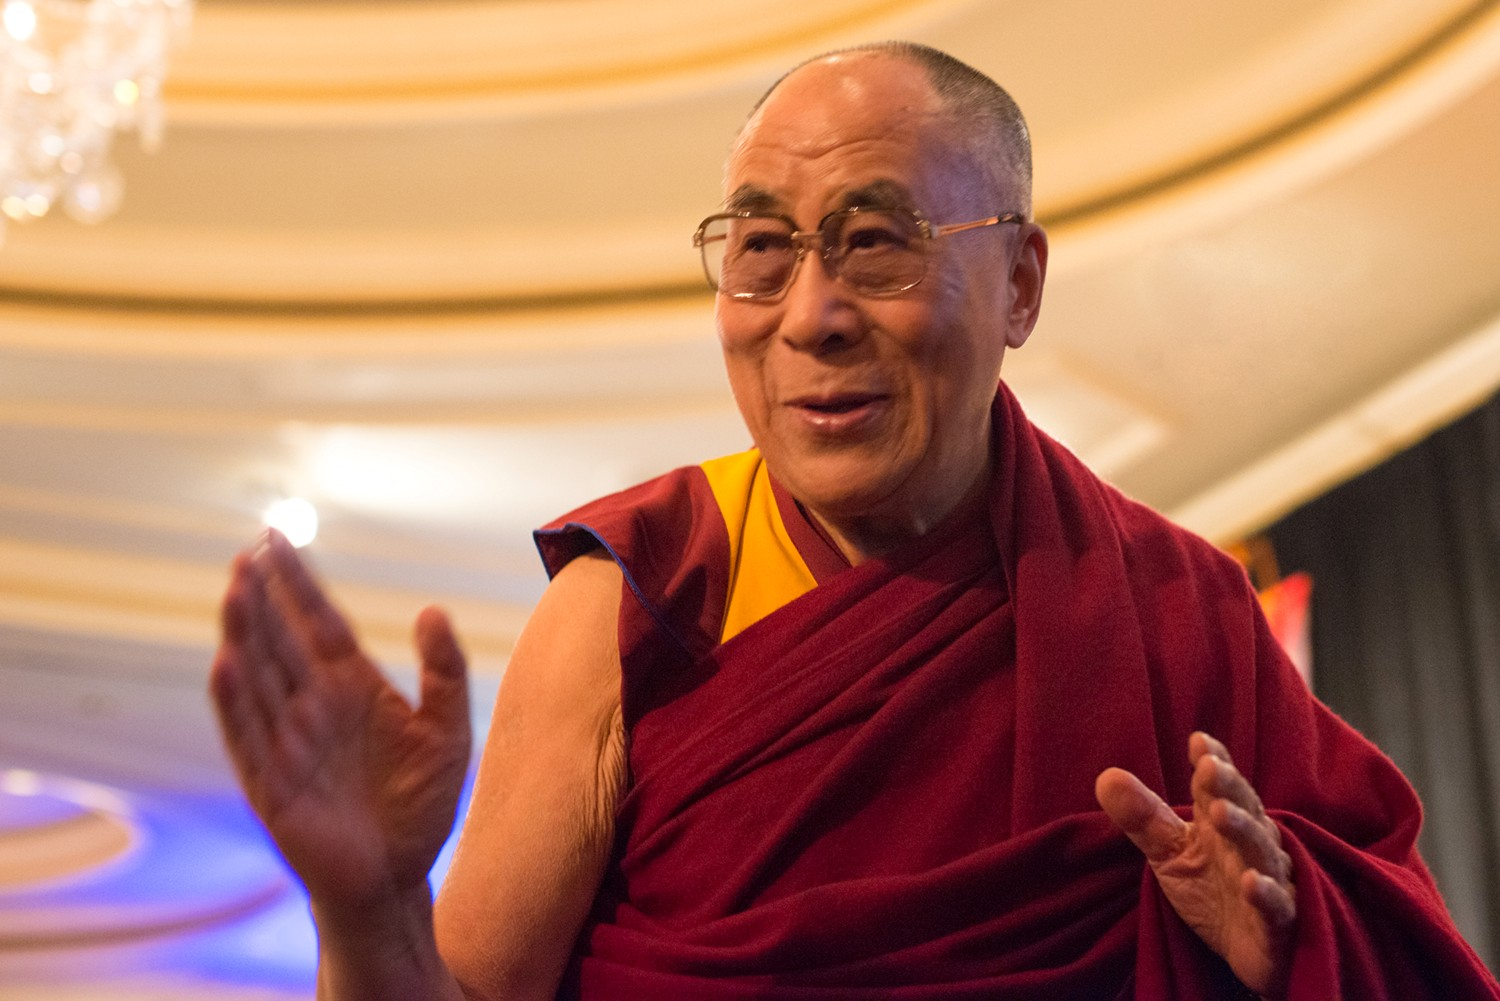 UN and other international bodies should take up the Dalai Lama succession issue: US